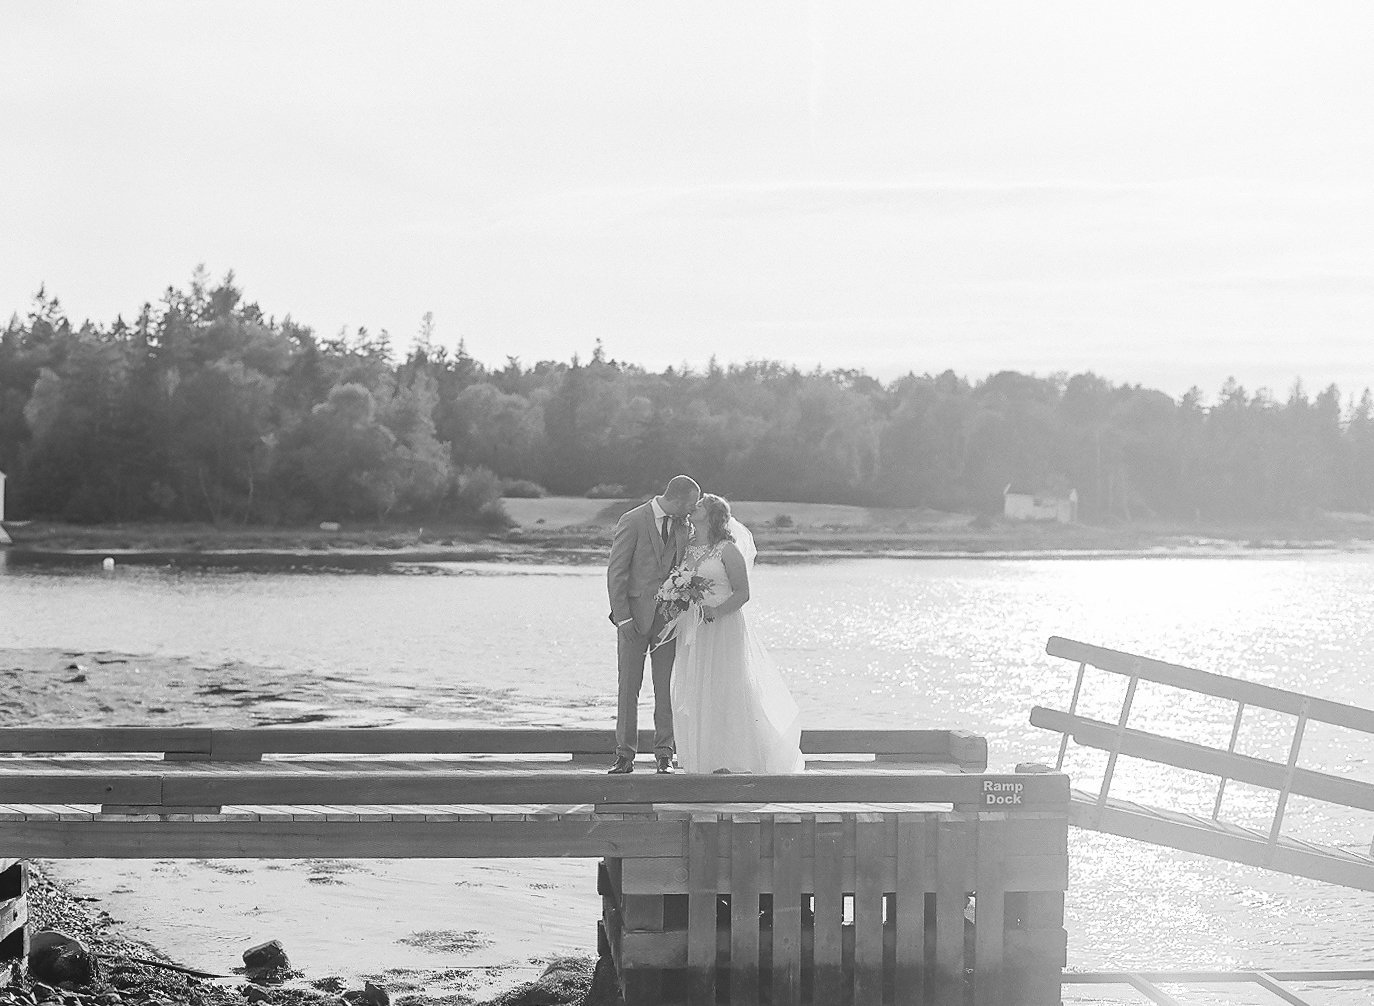 Shining Waters Marina Pier Wedding in late Summer, captured by Jacqueline Anne Photography in Black and White